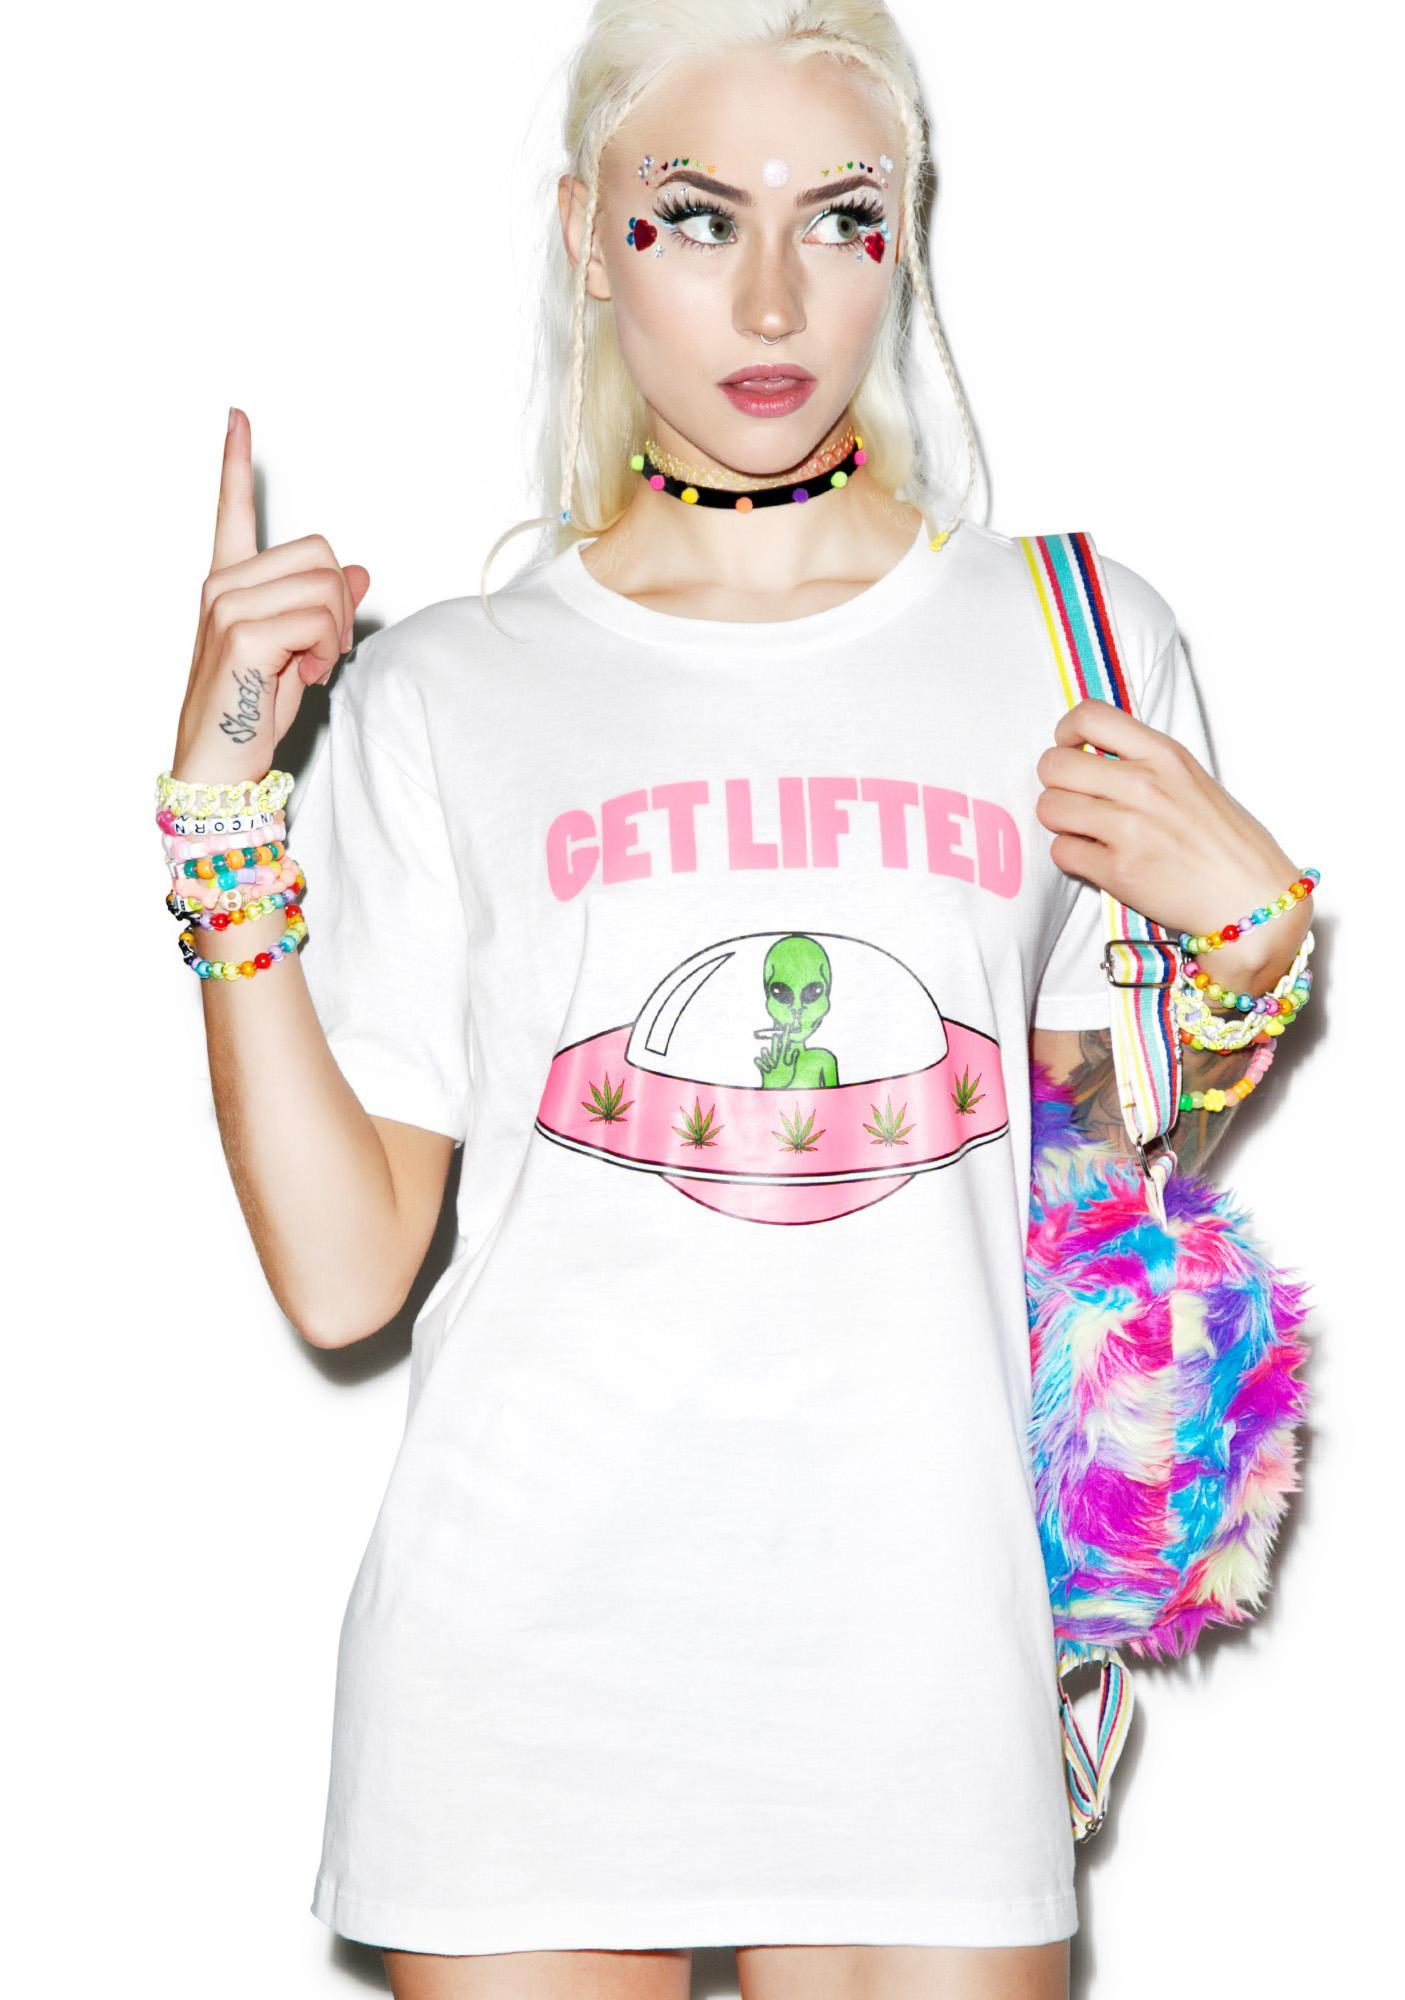 Get Lifted Tee